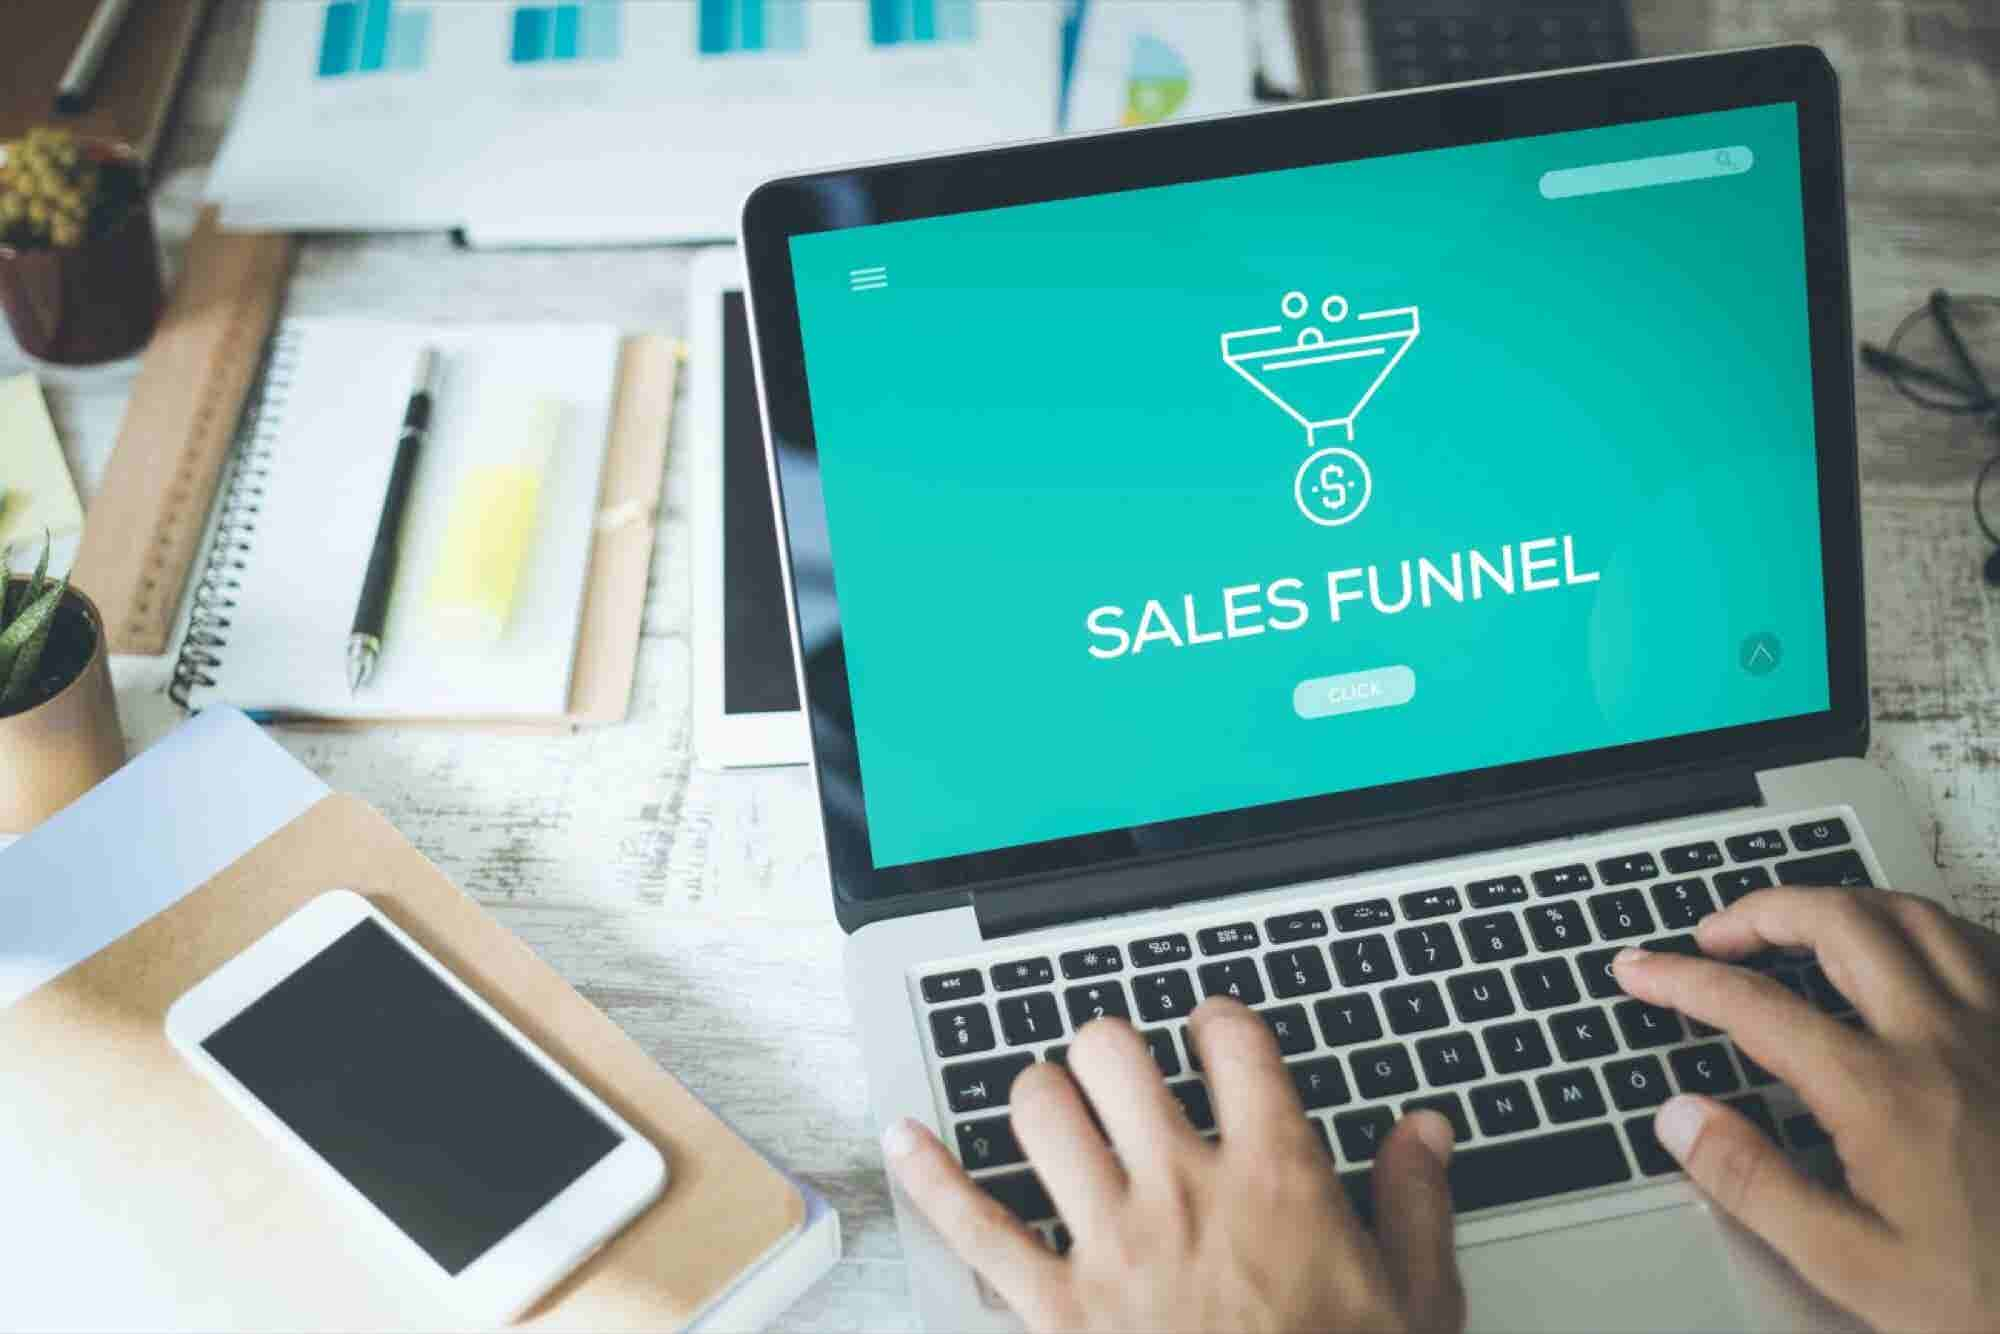 Insider Advice on Controlling the Sales Funnels for Your Service Businesses